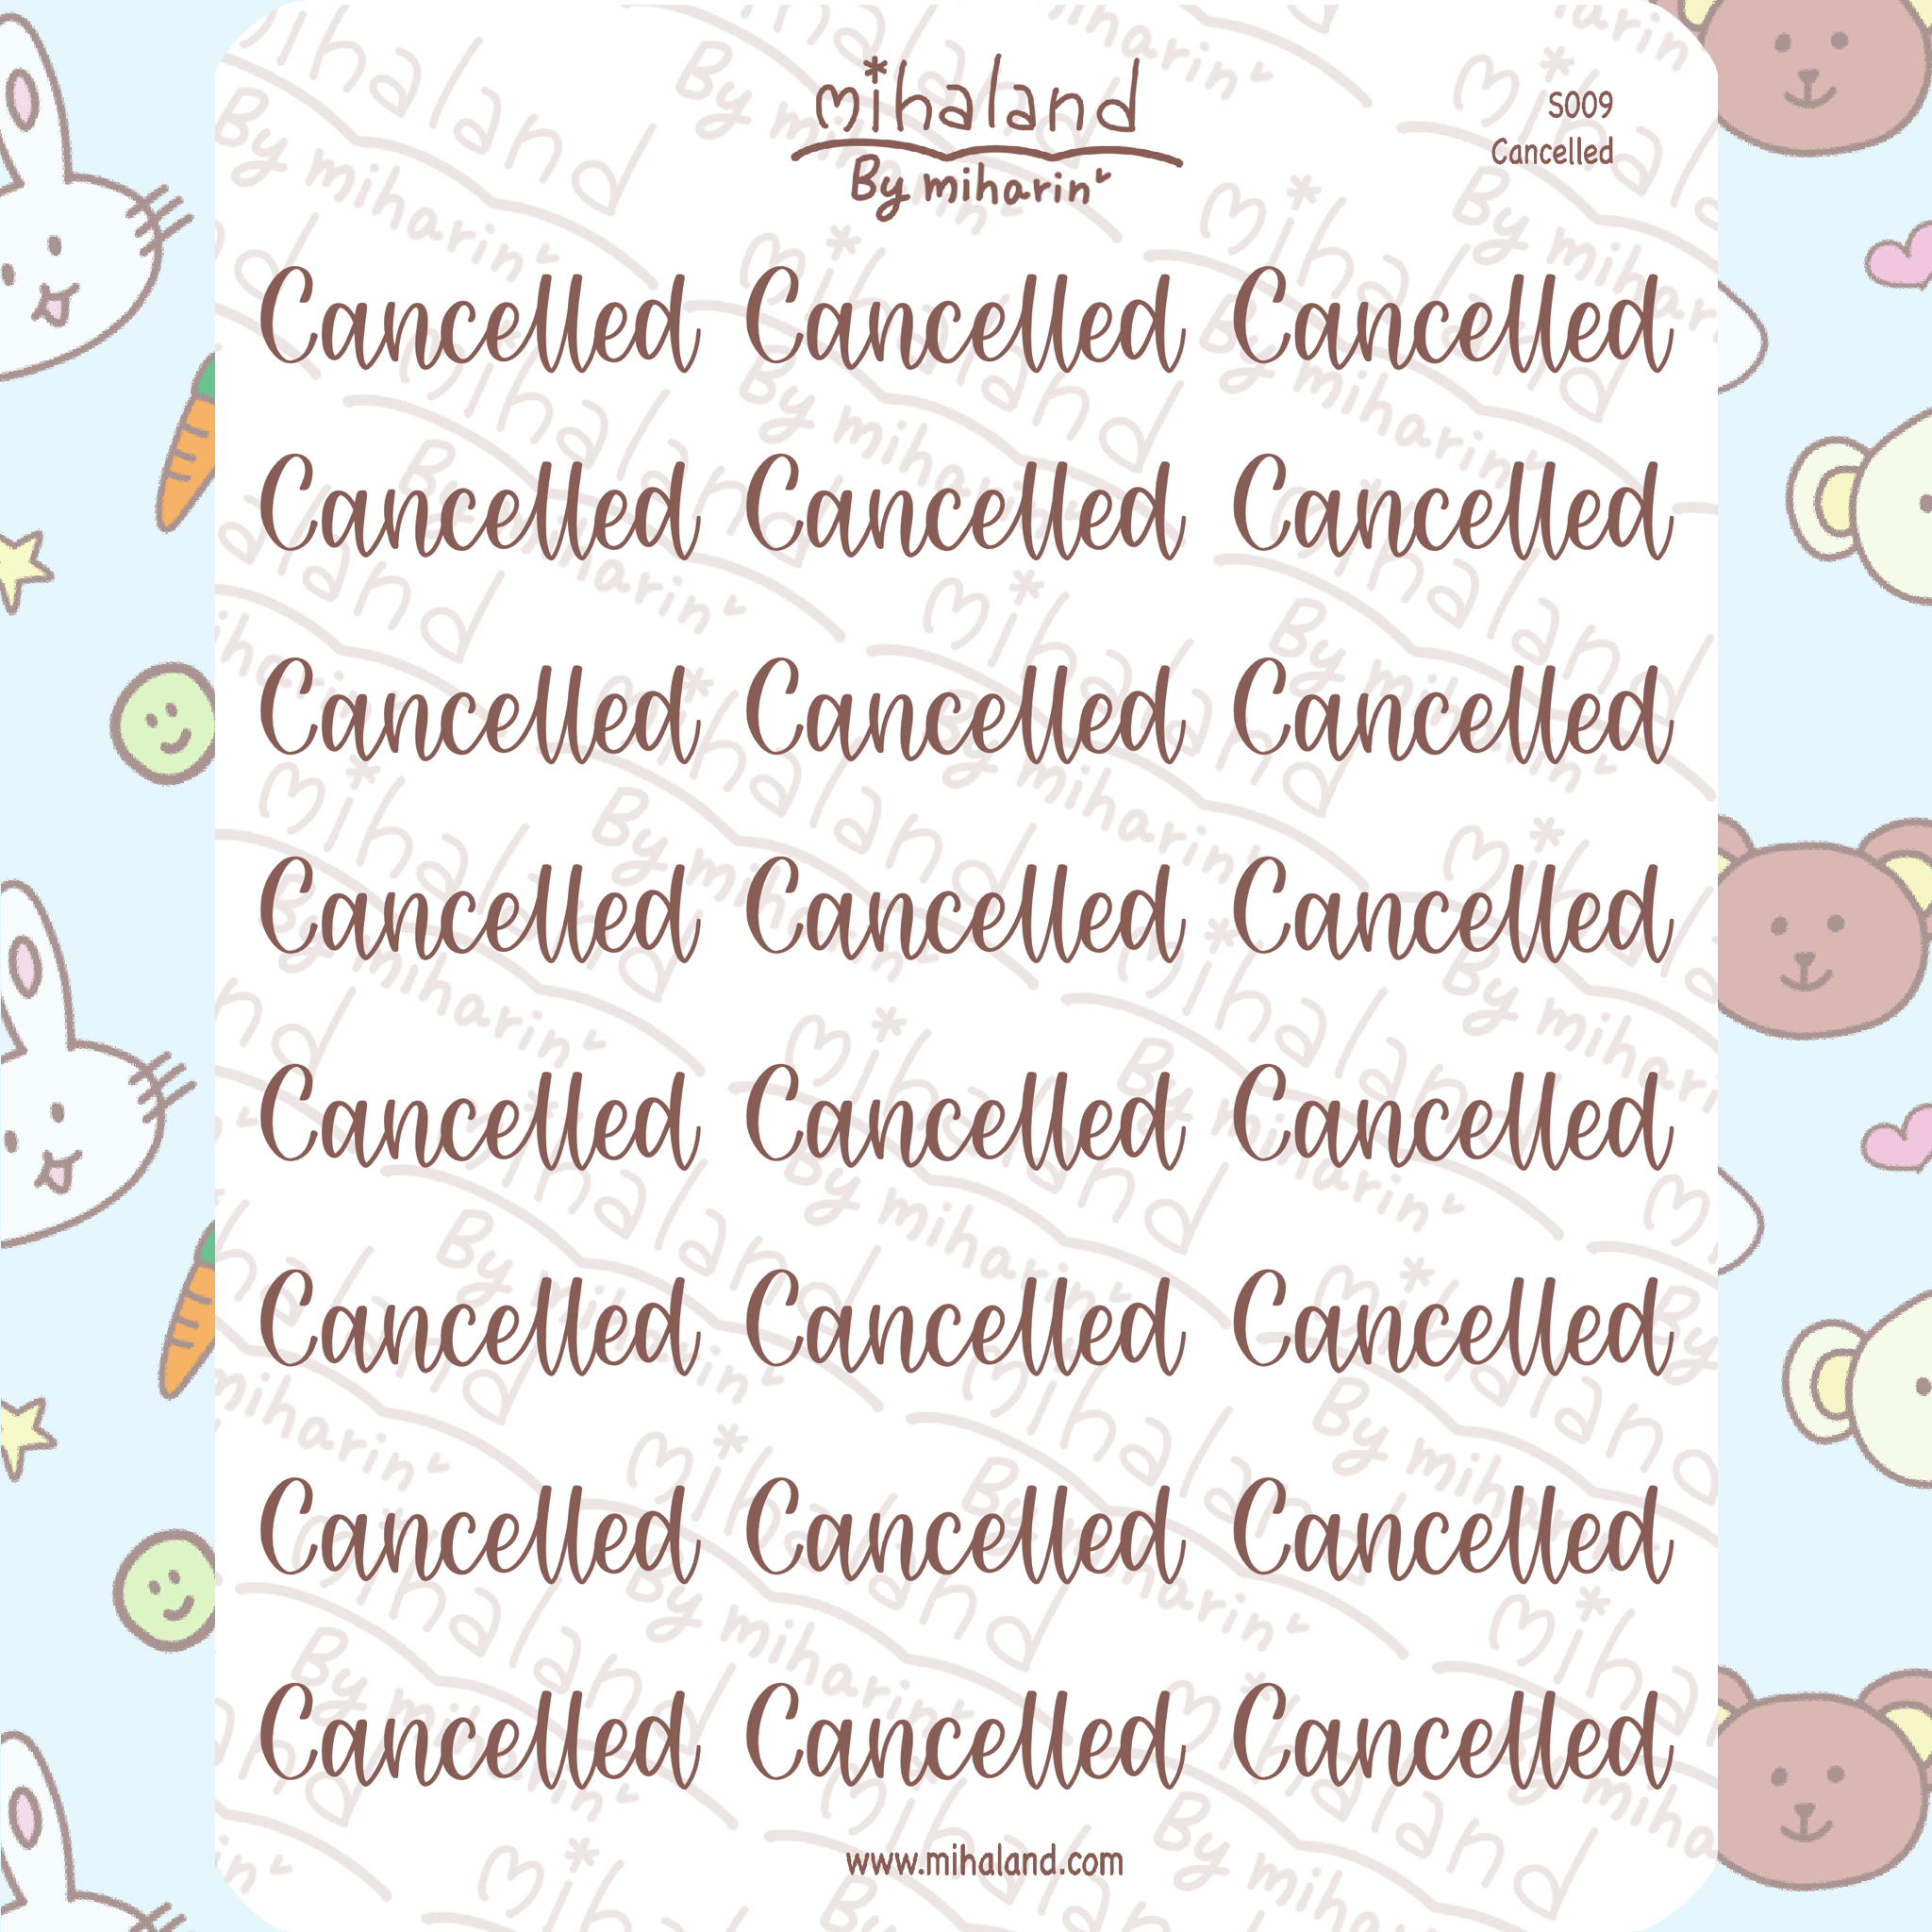 mihaland - Cancelled Script Planner Stickers (S009)